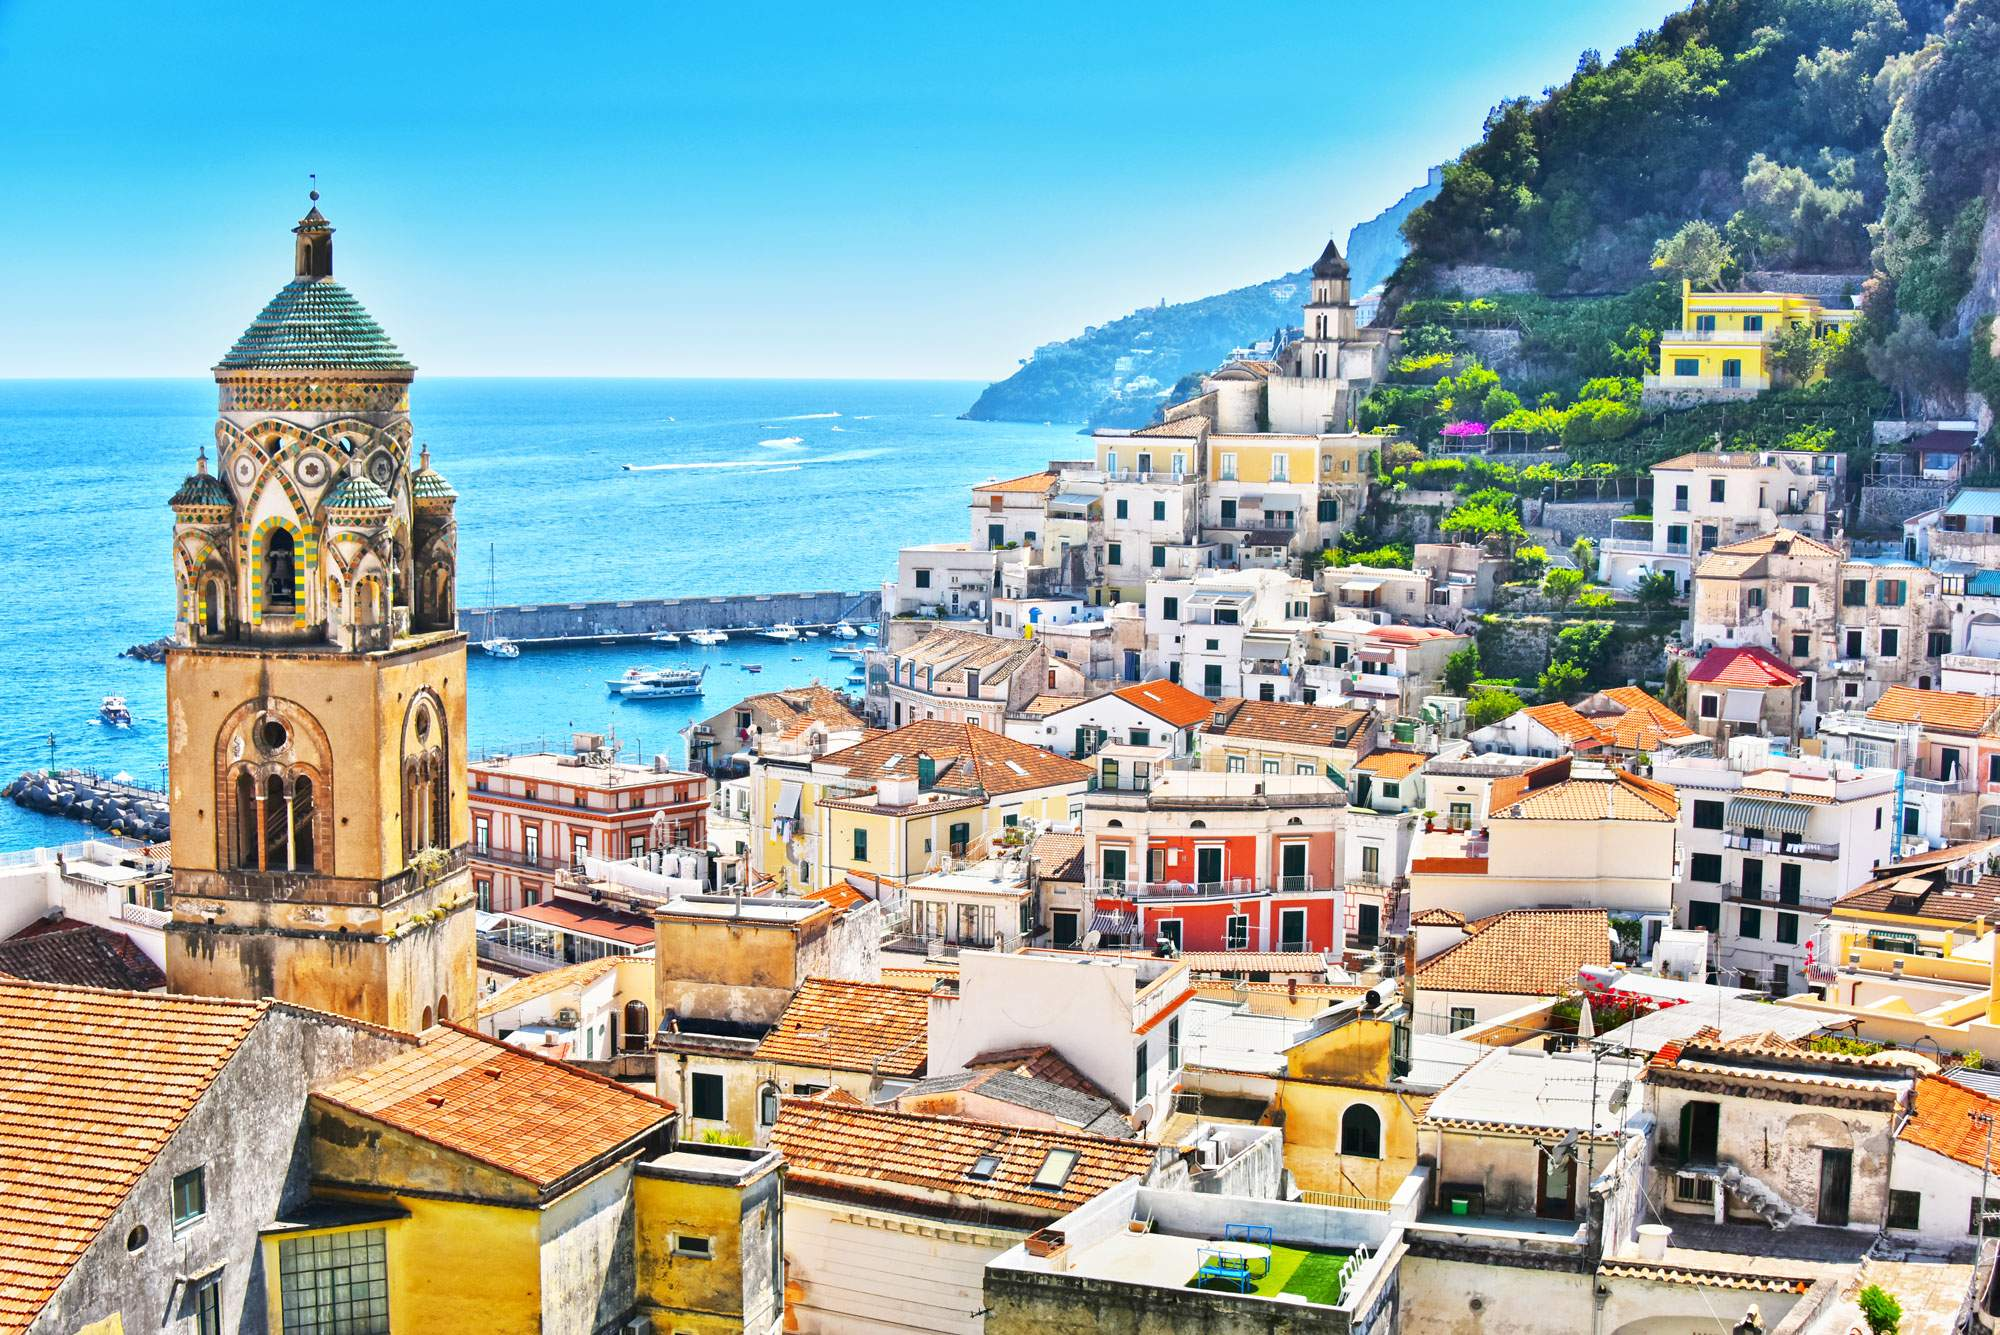 salerno-amalfi-coast-italy-seaview-church